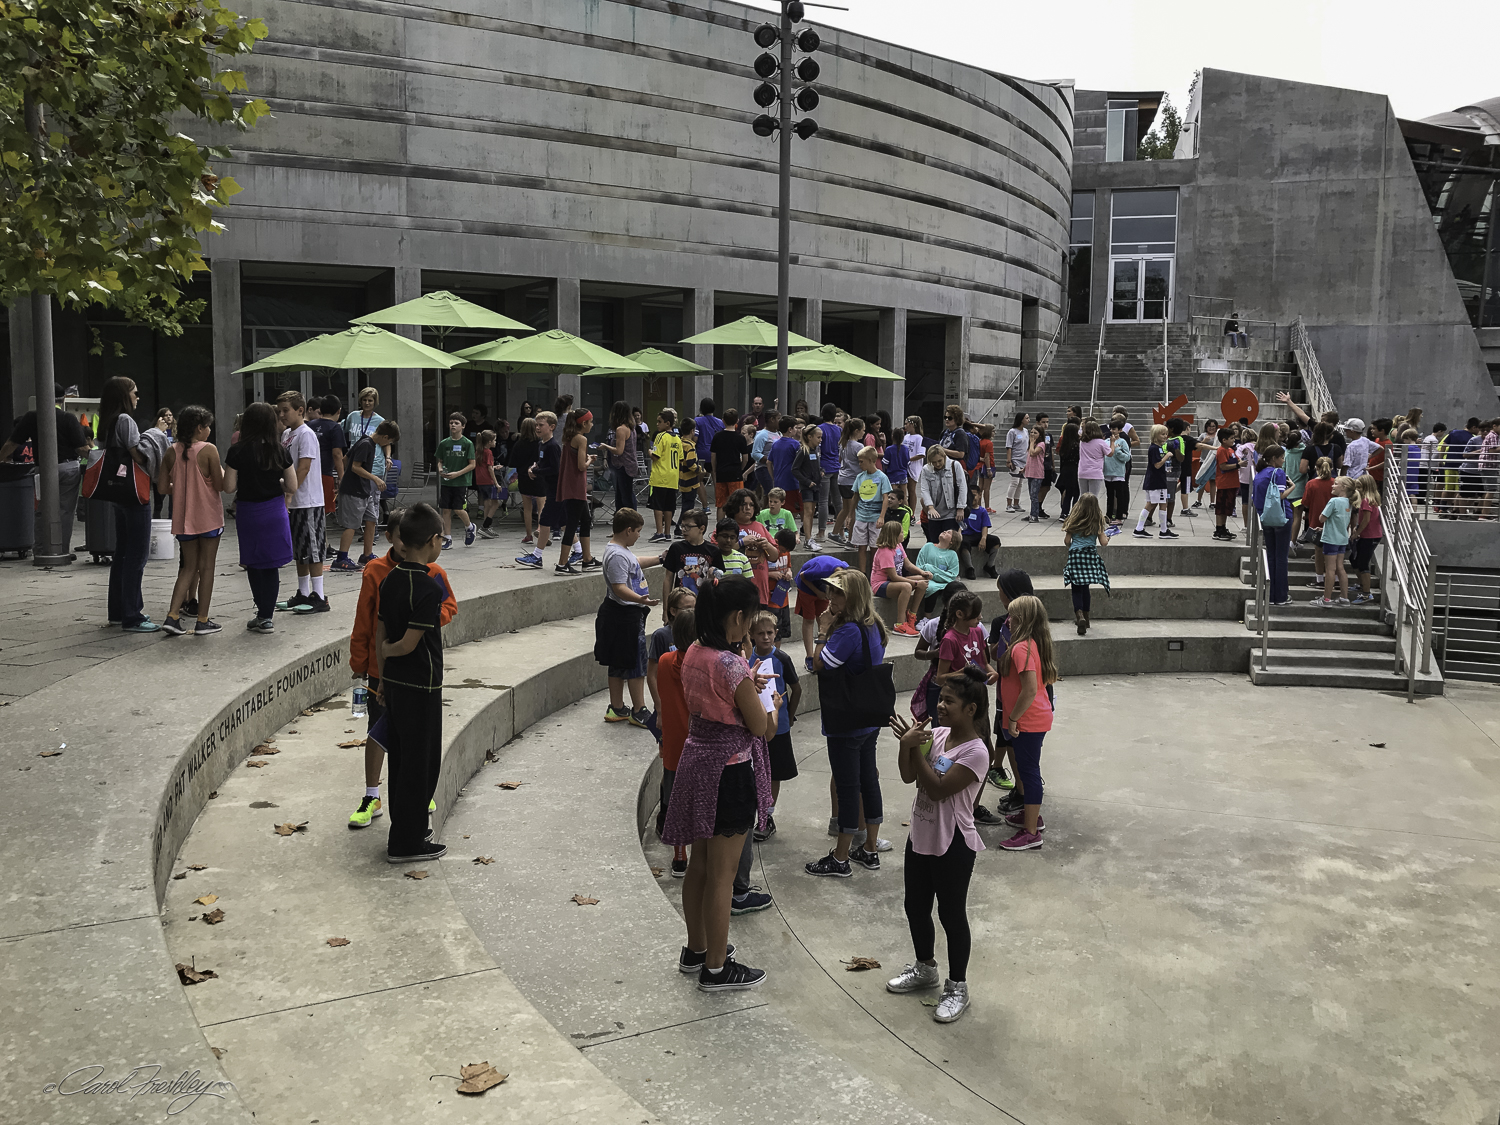 School children visiting the Museum filled the open spaces in a brief respite from rain.